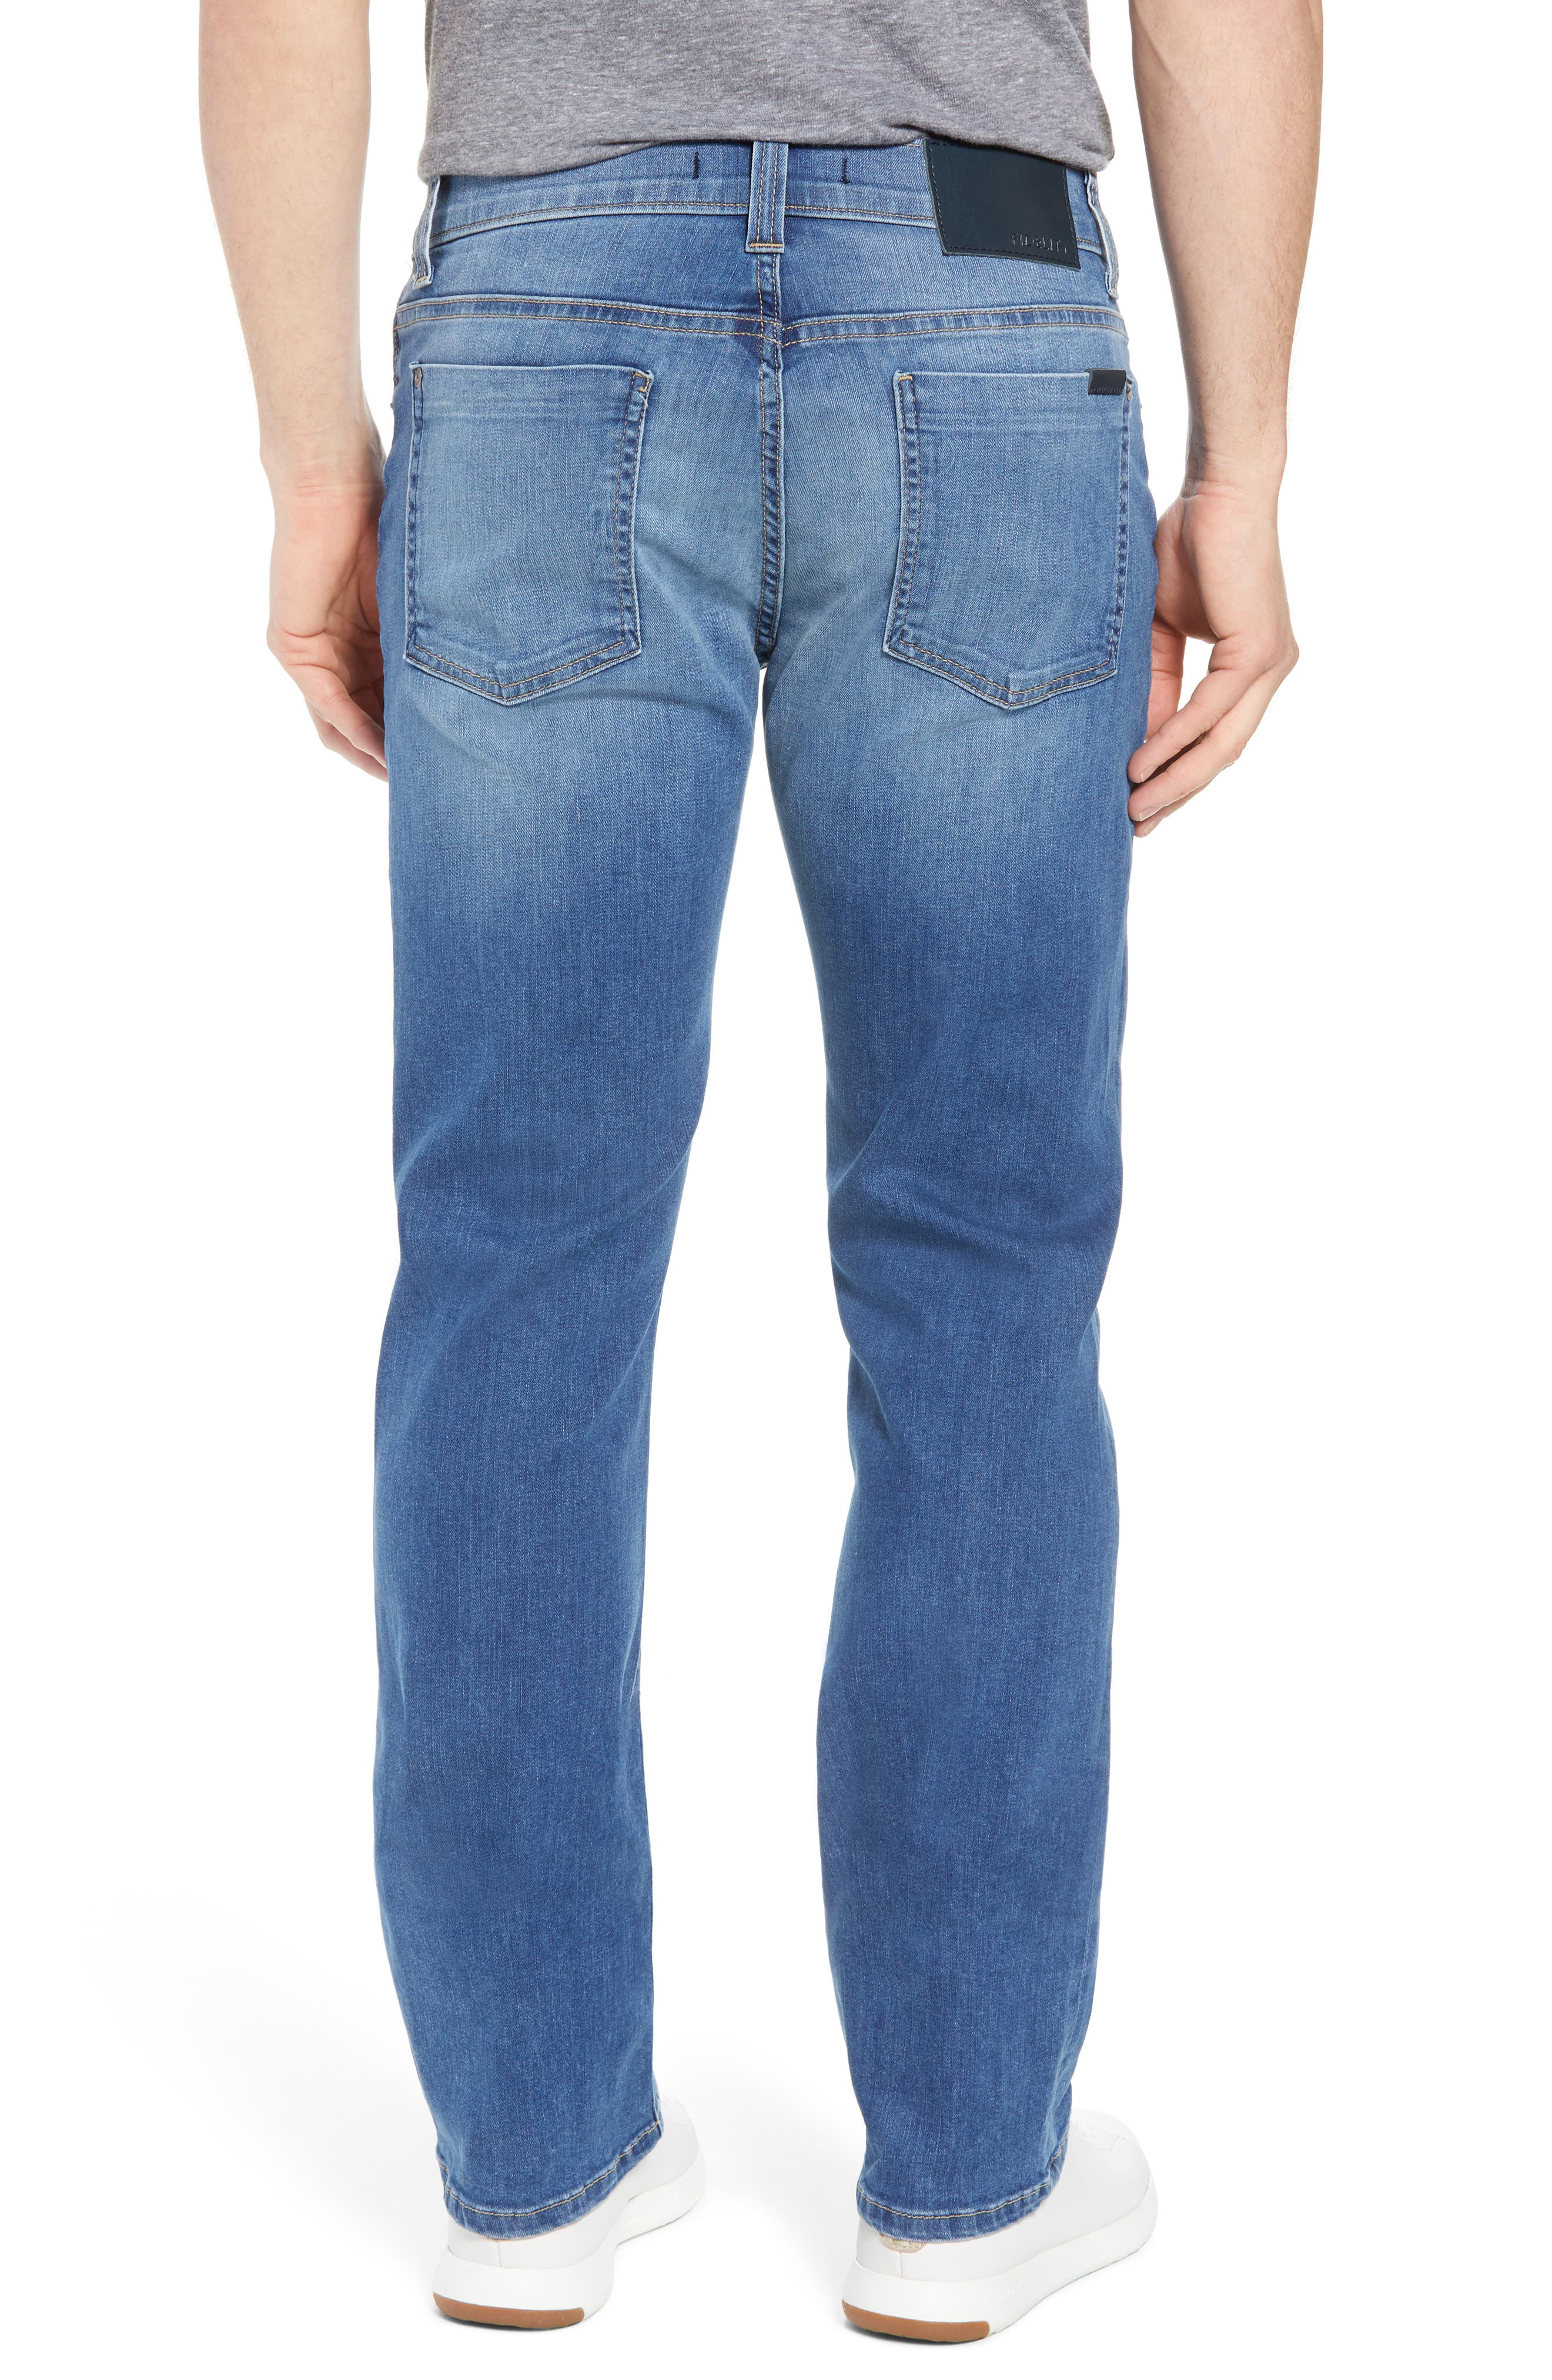 50-11 Relaxed Fit Jeans,                             Alternate thumbnail 2, color,